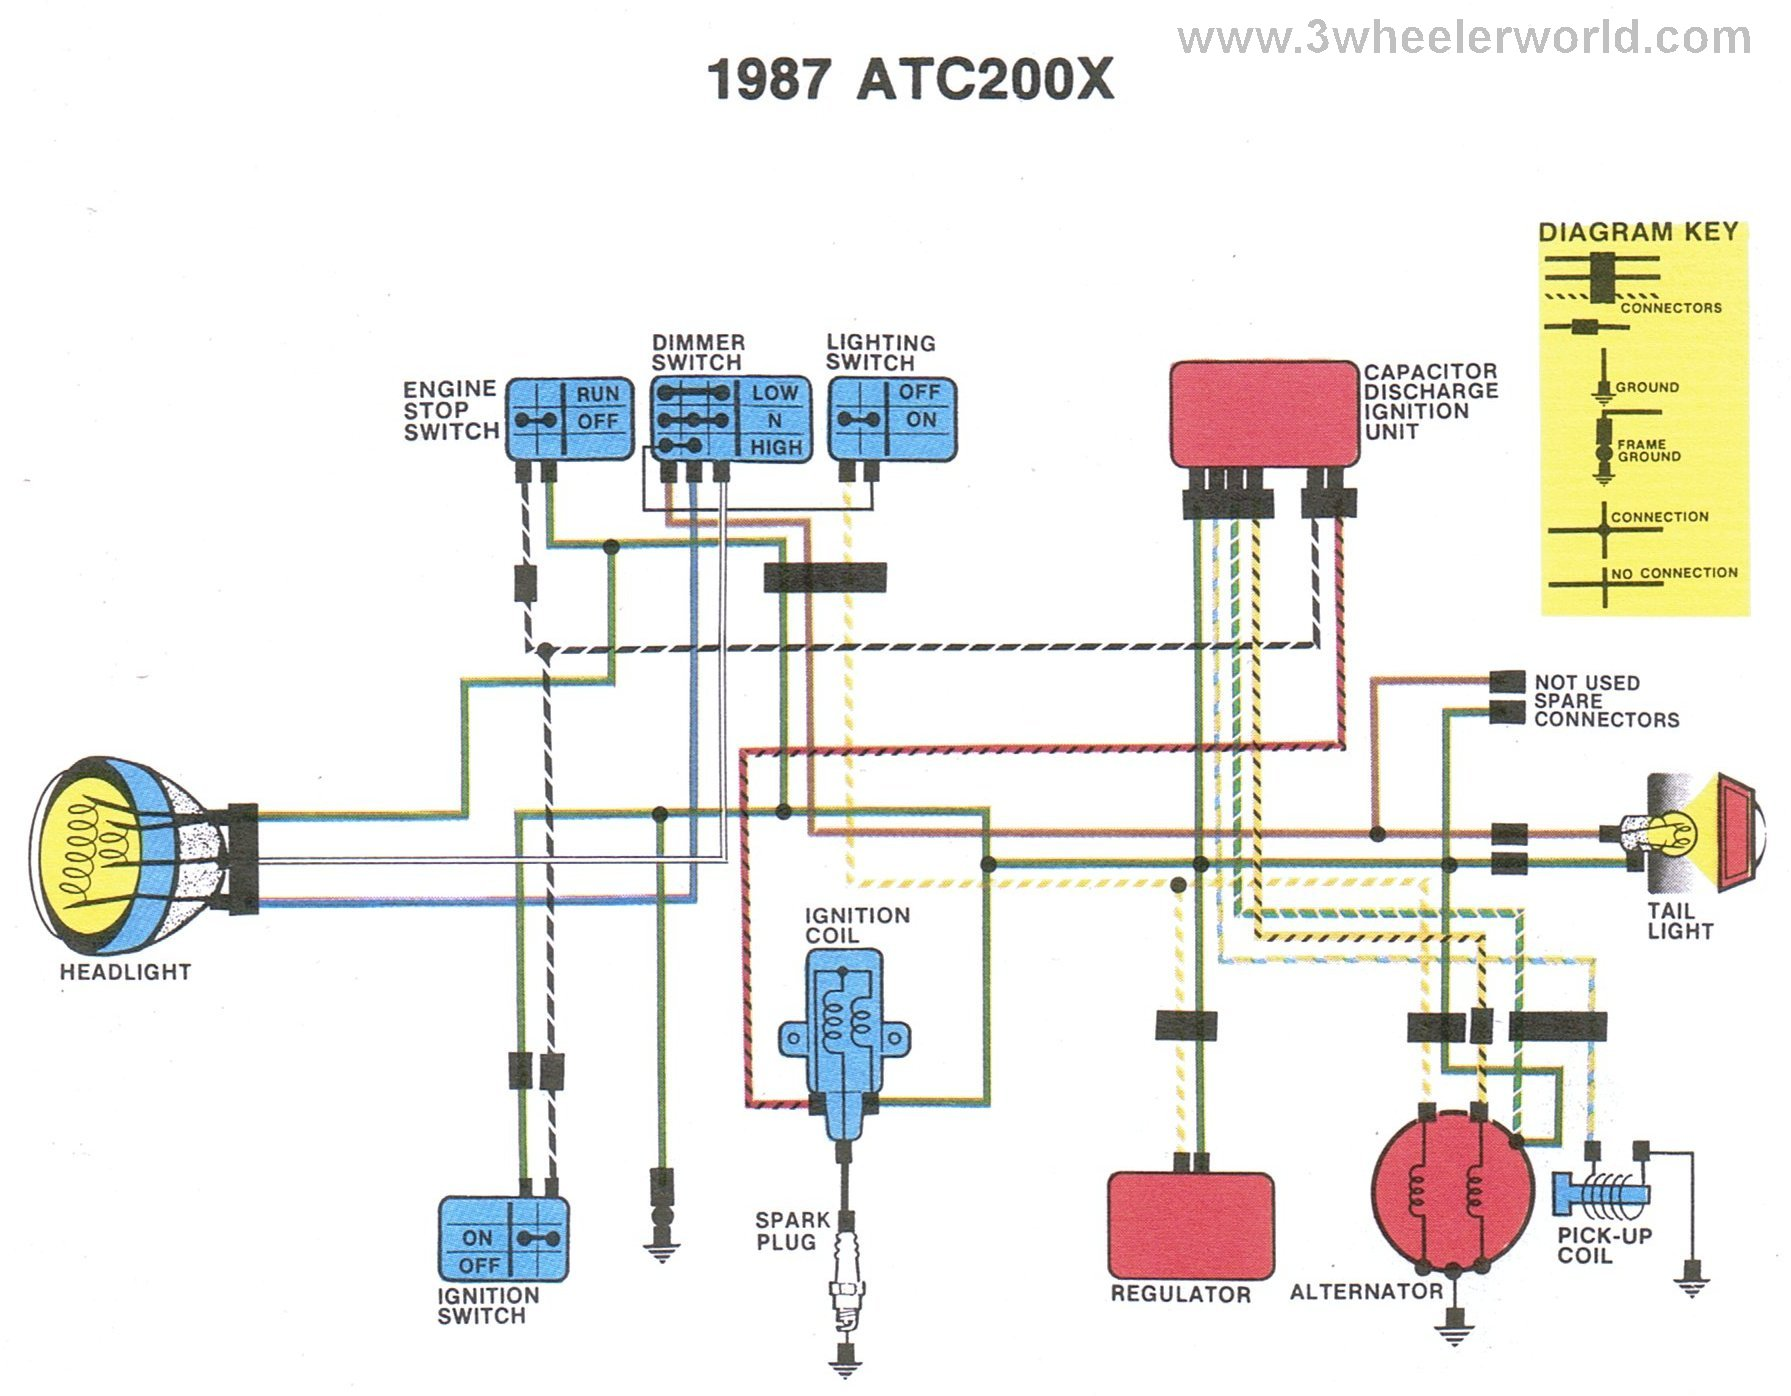 ATC200Xx87 3 wheeler world tech help honda wiring diagrams  at crackthecode.co